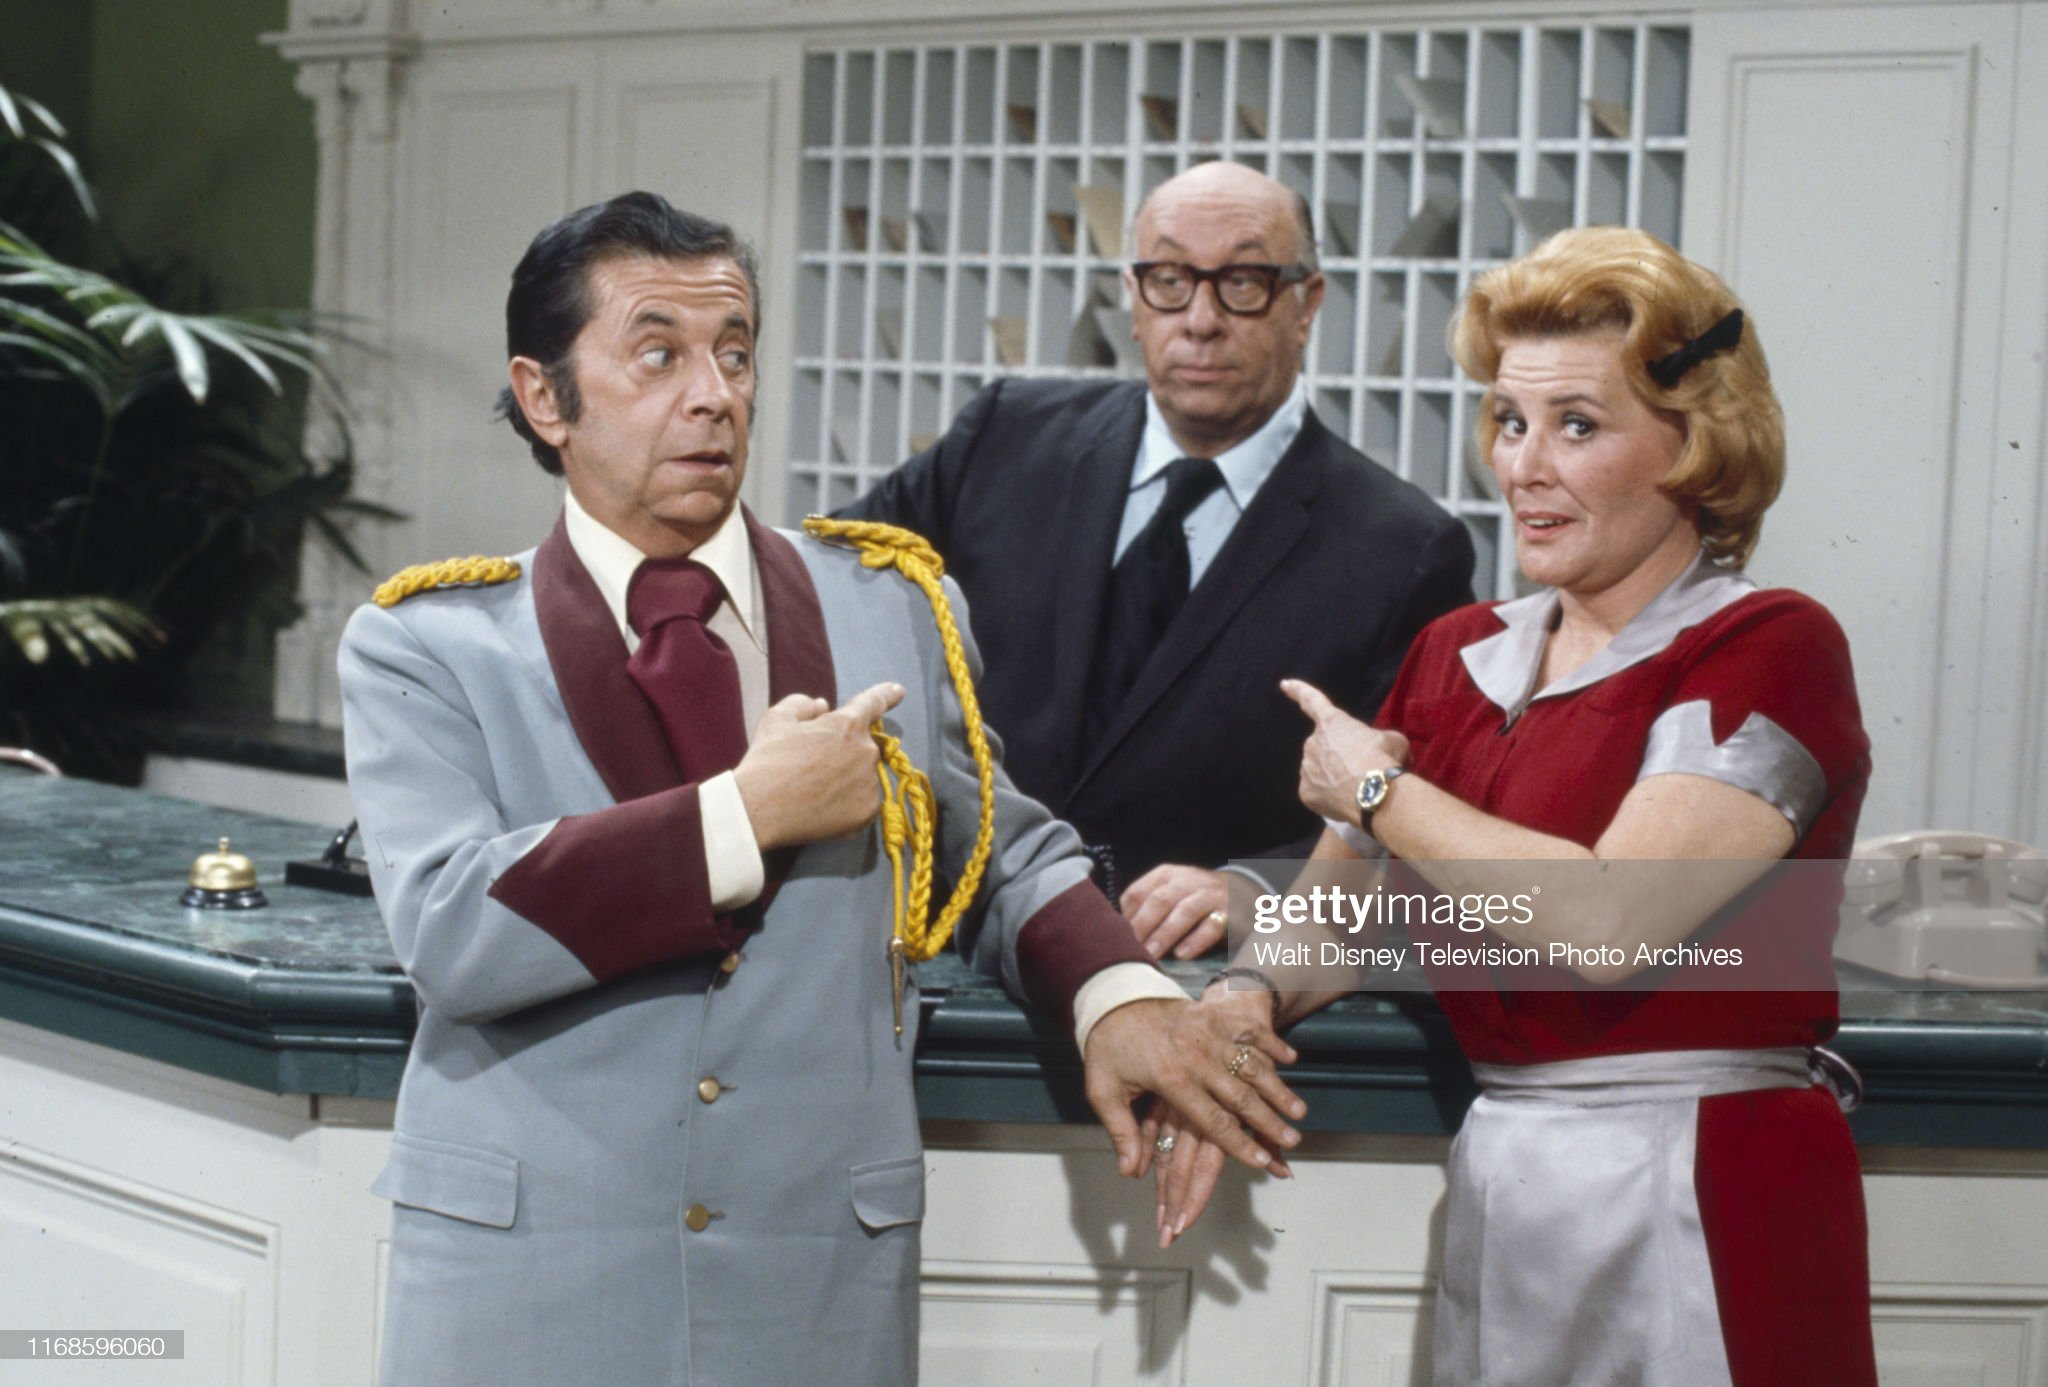 Morey Amsterdam, Richard Deacon, Rose Marie Appearing In 'Honeymoon Suite' : News Photo